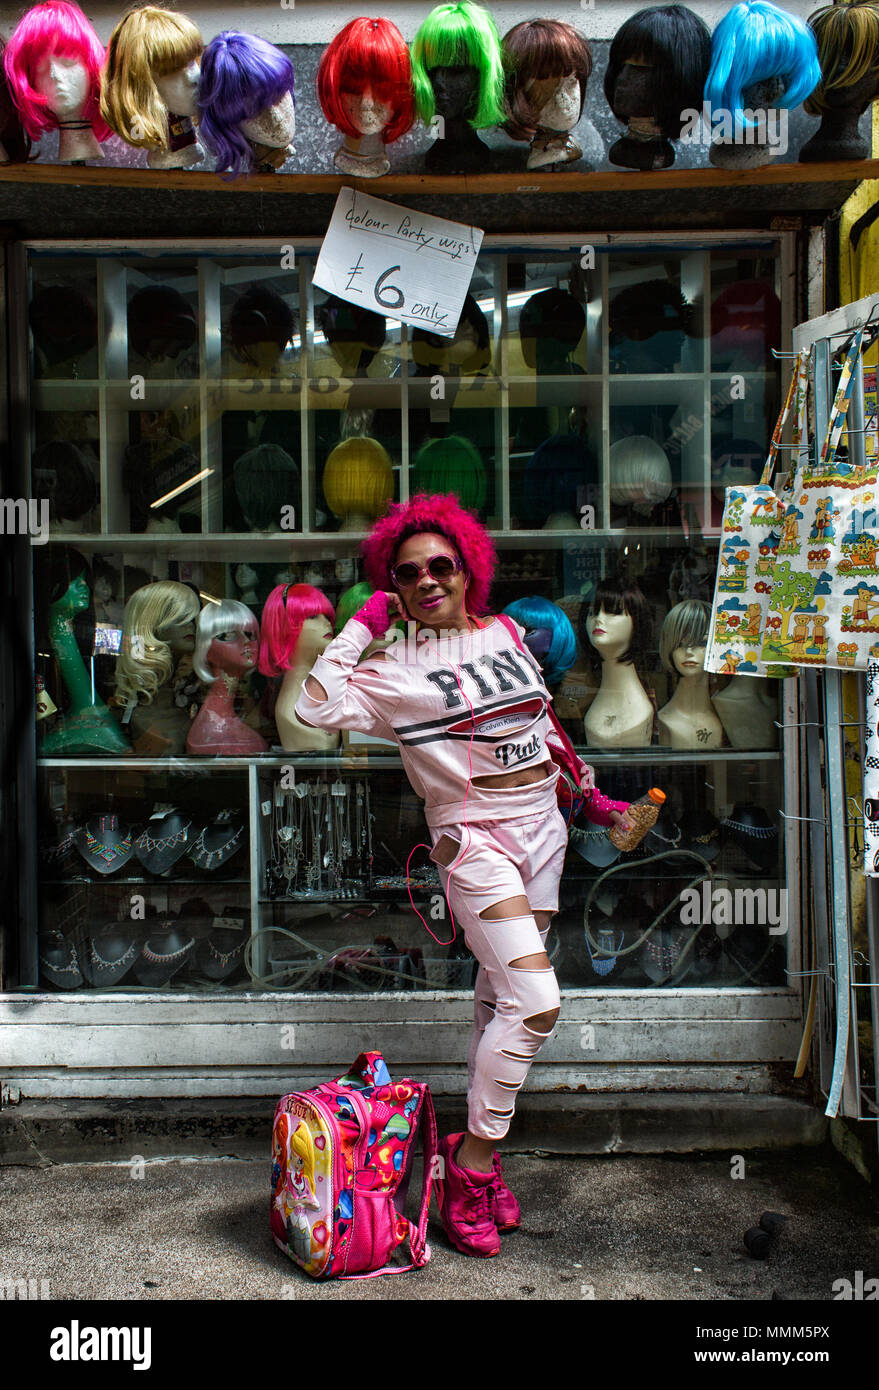 Lady dressed in pink wearing a pink wig poses in front of a wig shop in Brixton Village London SW2 Stock Photo